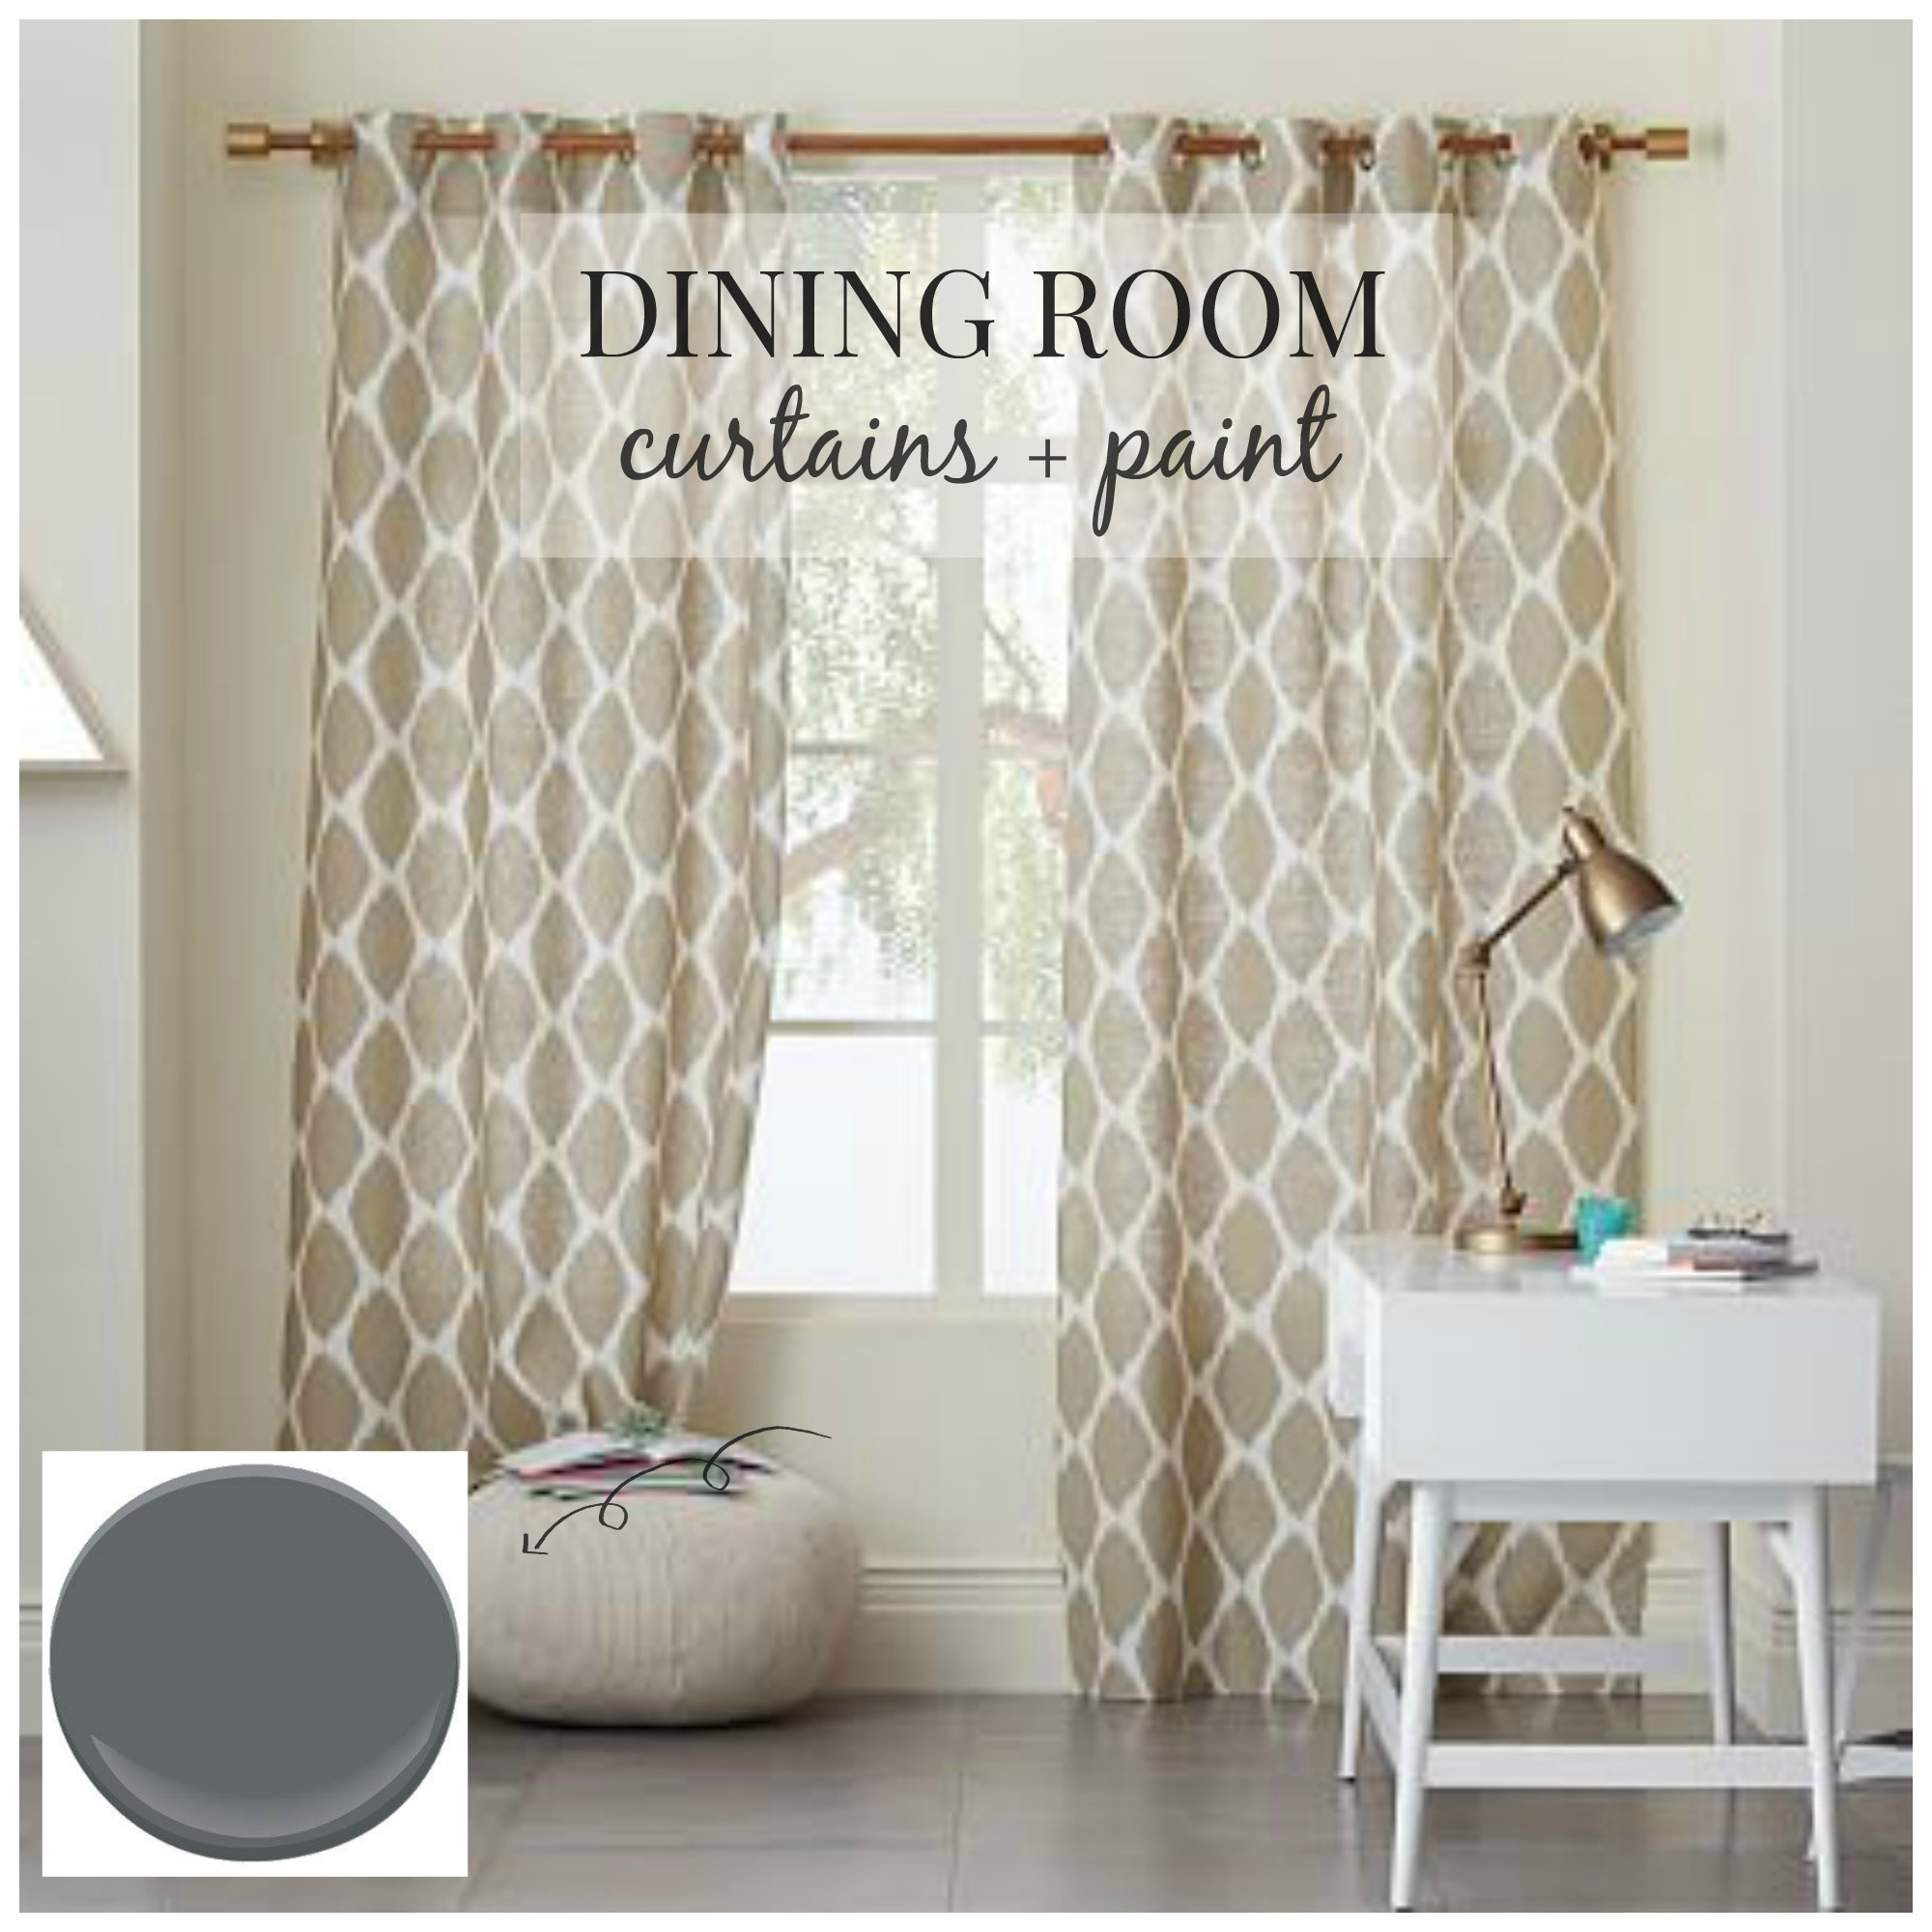 Dining Room Curtains Paint